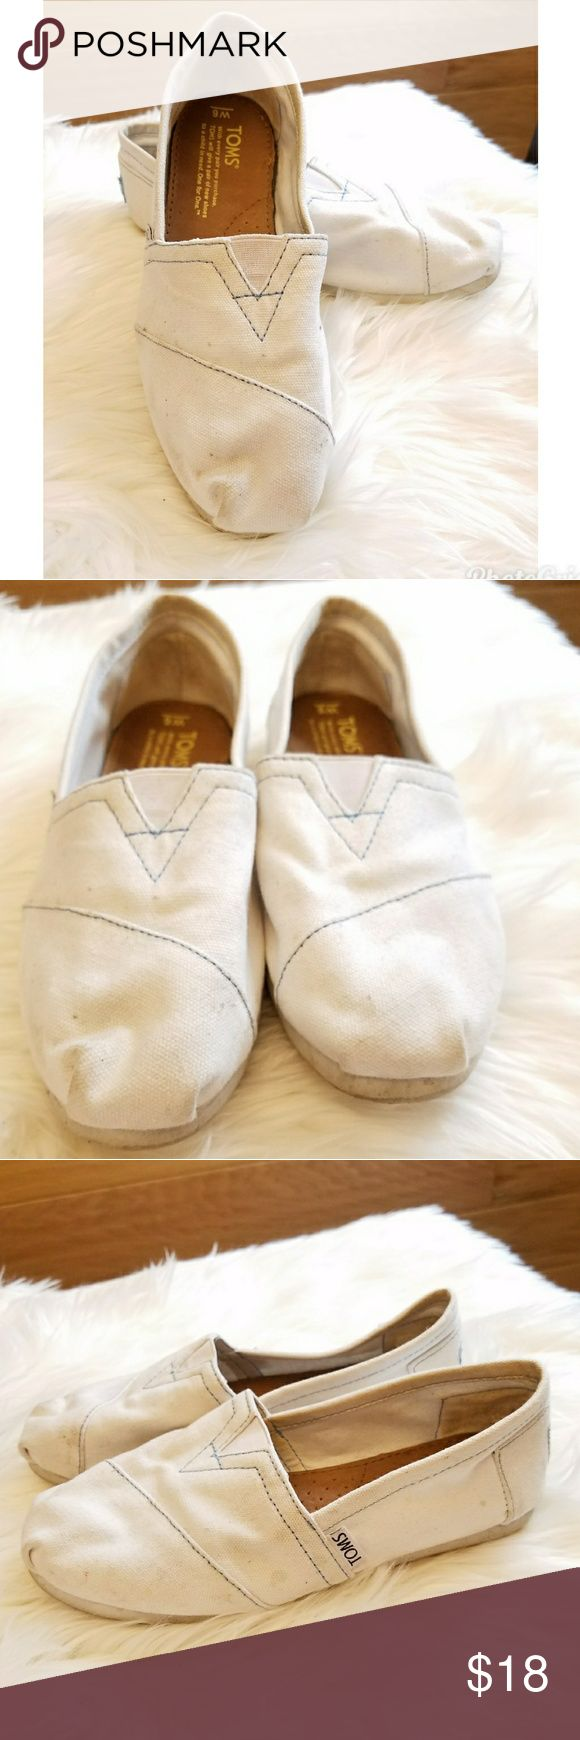 Toms woman's size 6 Pre owned in good condition, spots of dirt on back heel and tip of toes. Haven't been washed. Toms Shoes Flats & Loafers